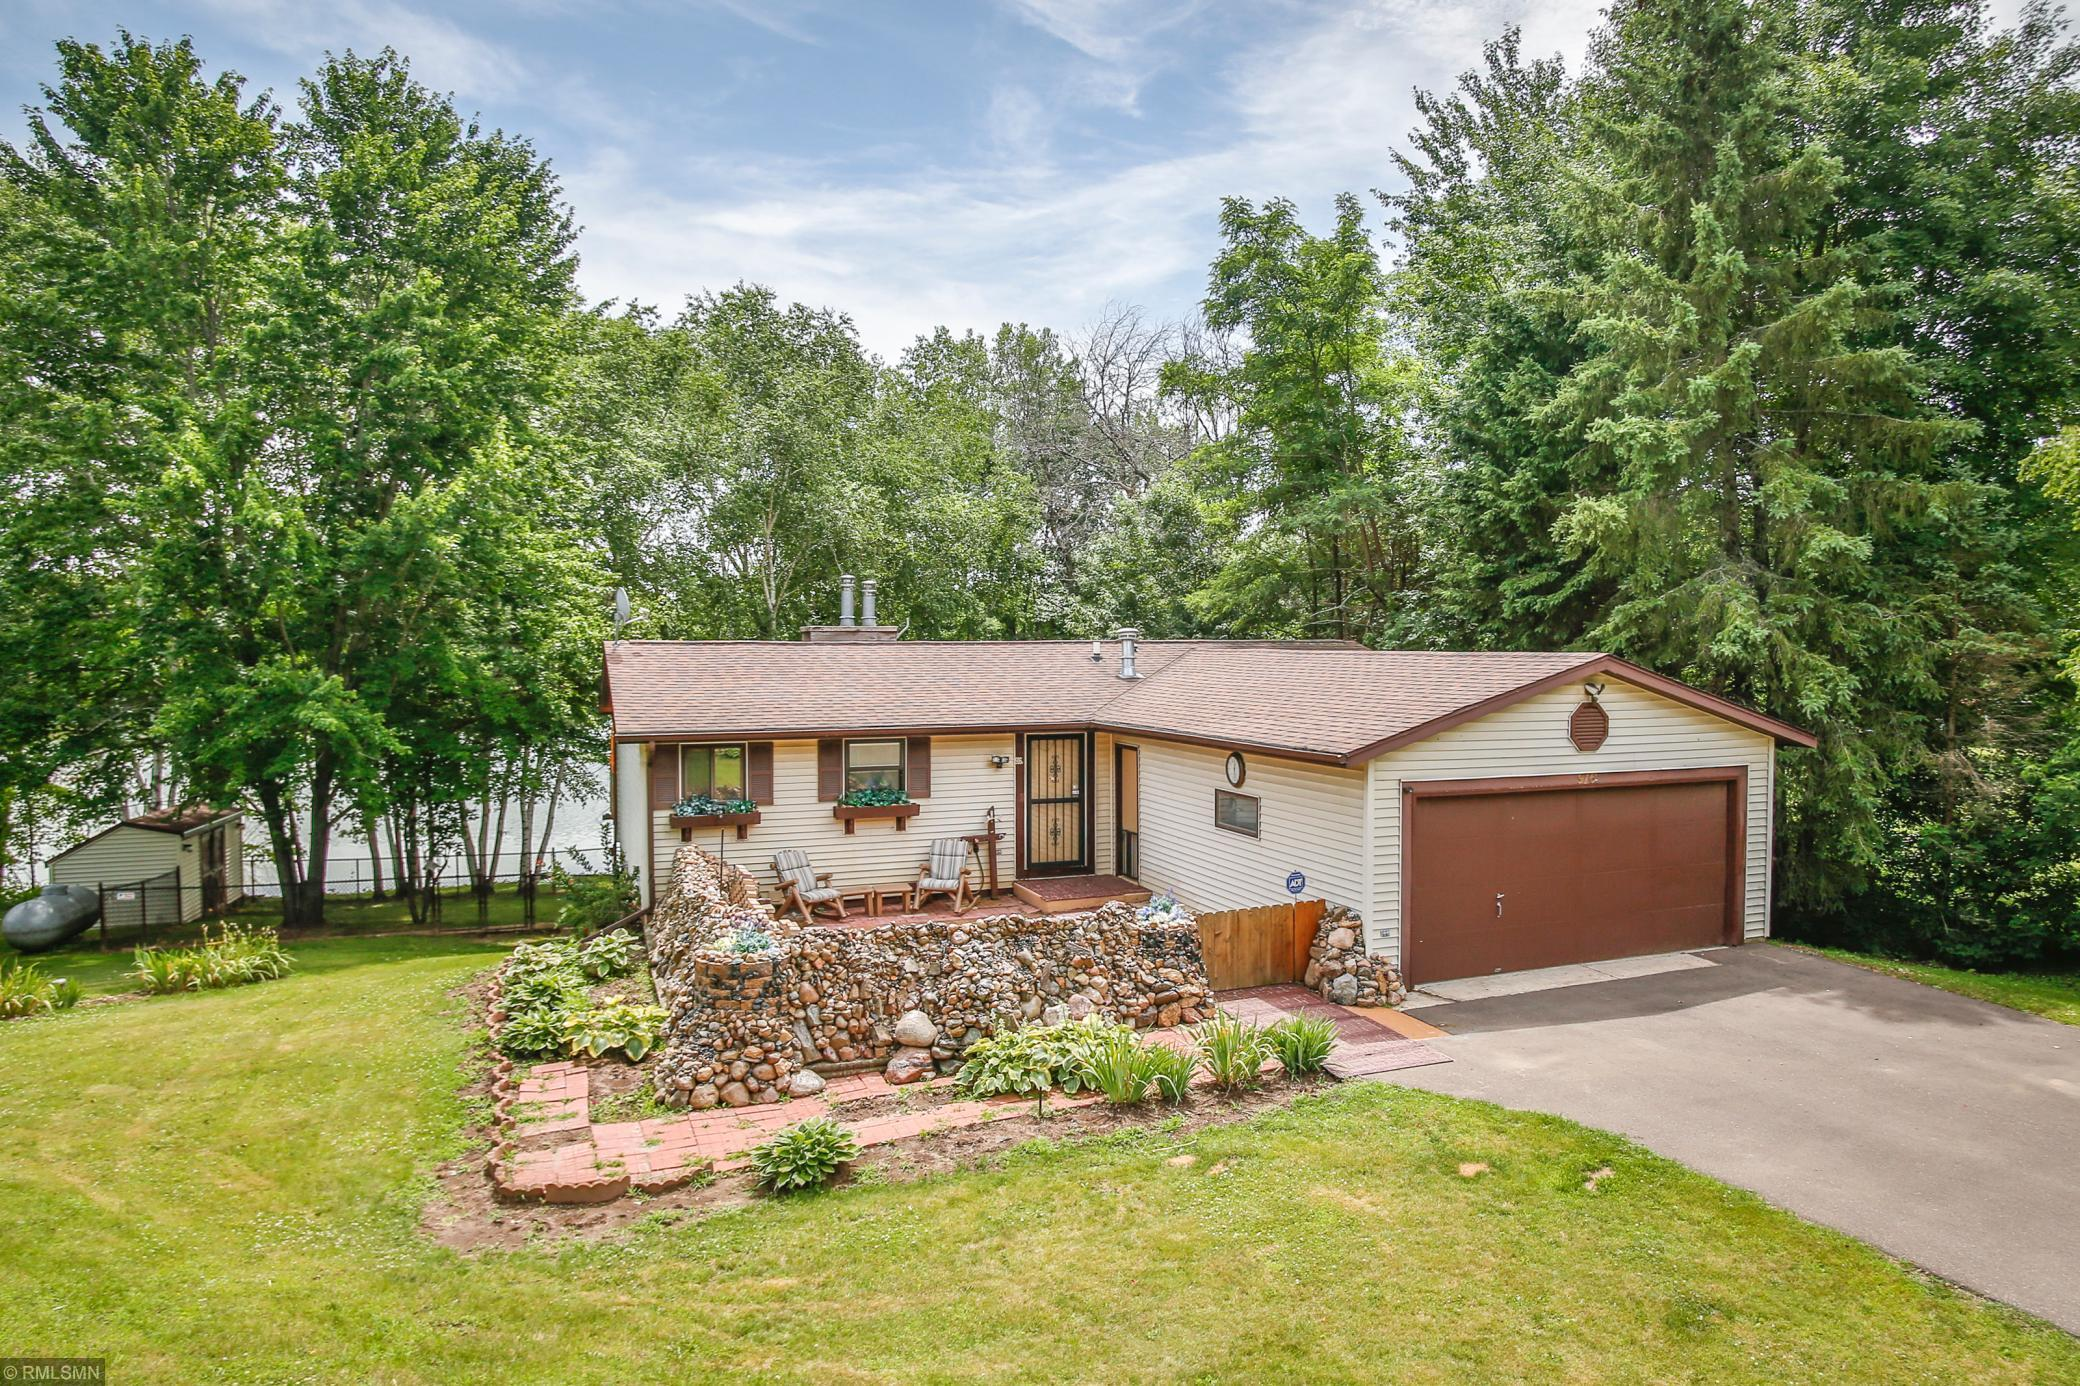 916 Brave Property Photo - Star Prairie, WI real estate listing